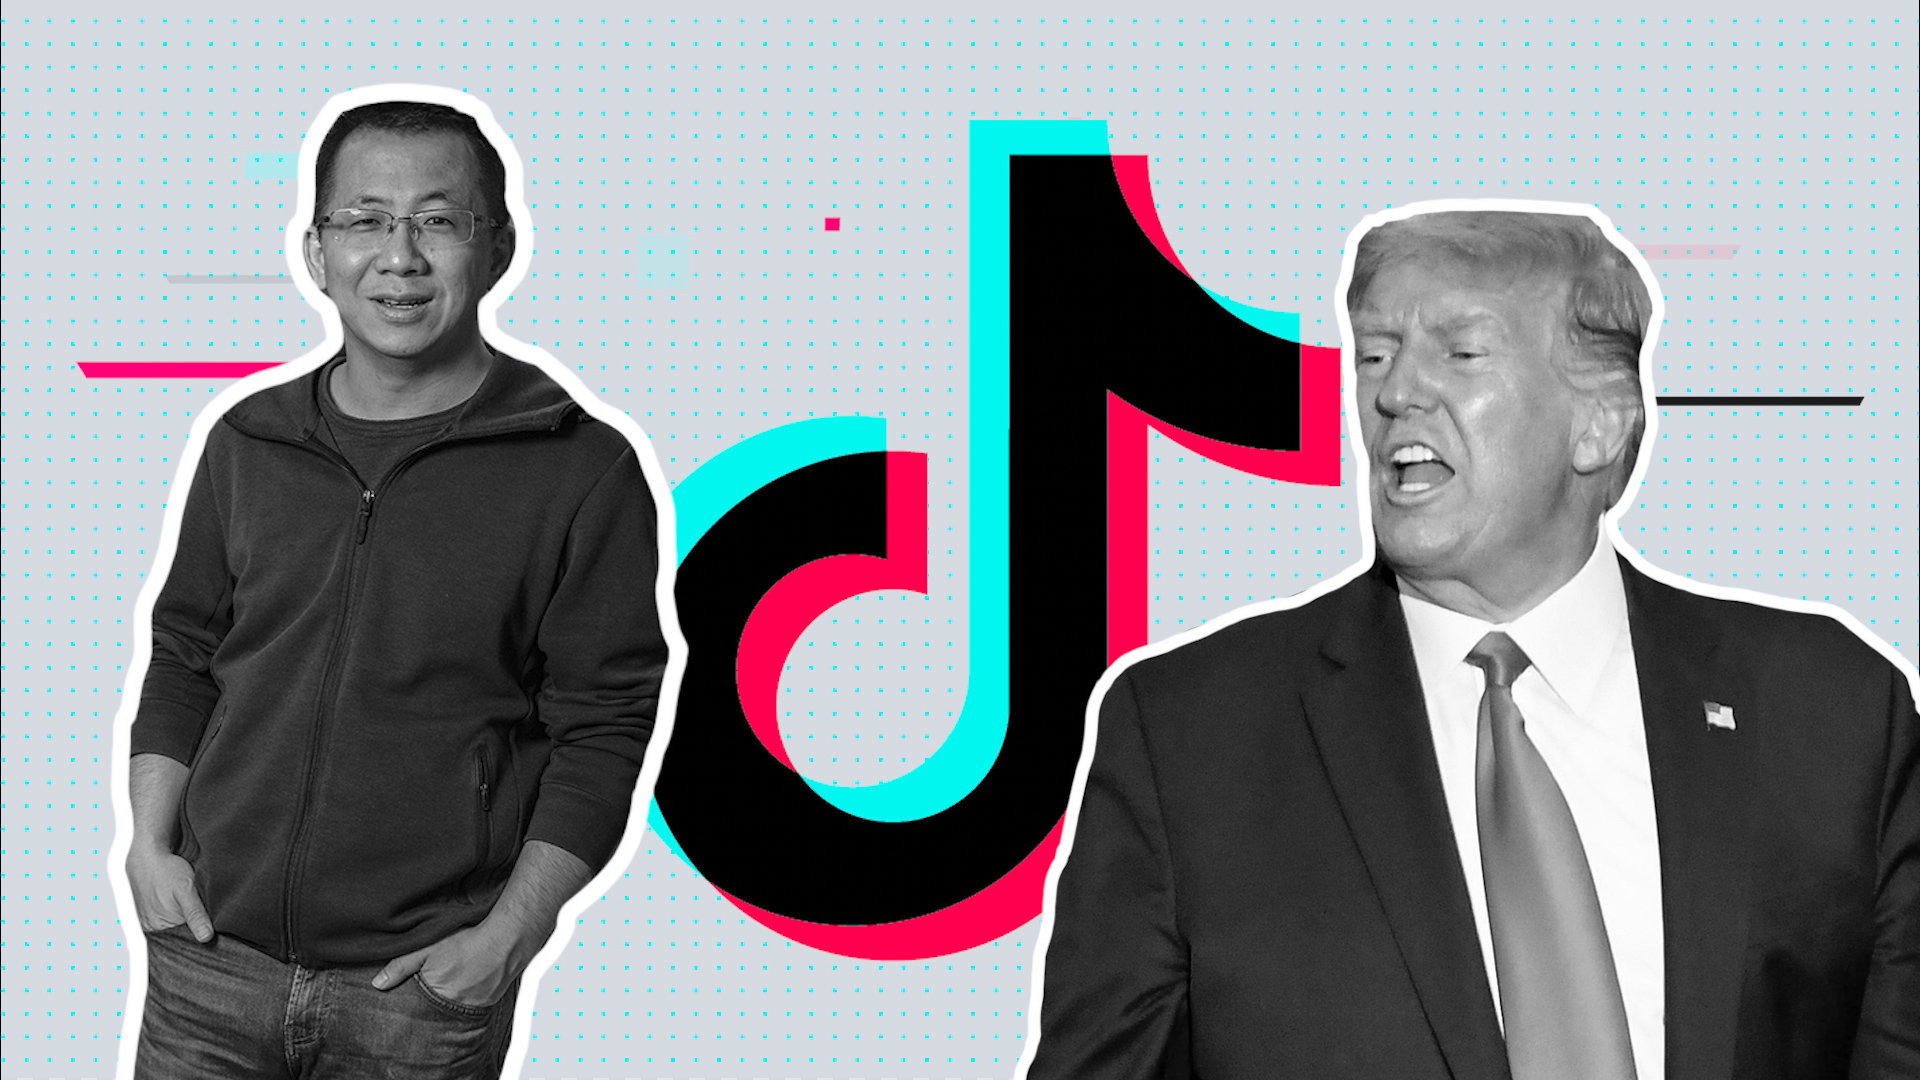 The Repatriation of TikTok: Why is Washington Afraid?